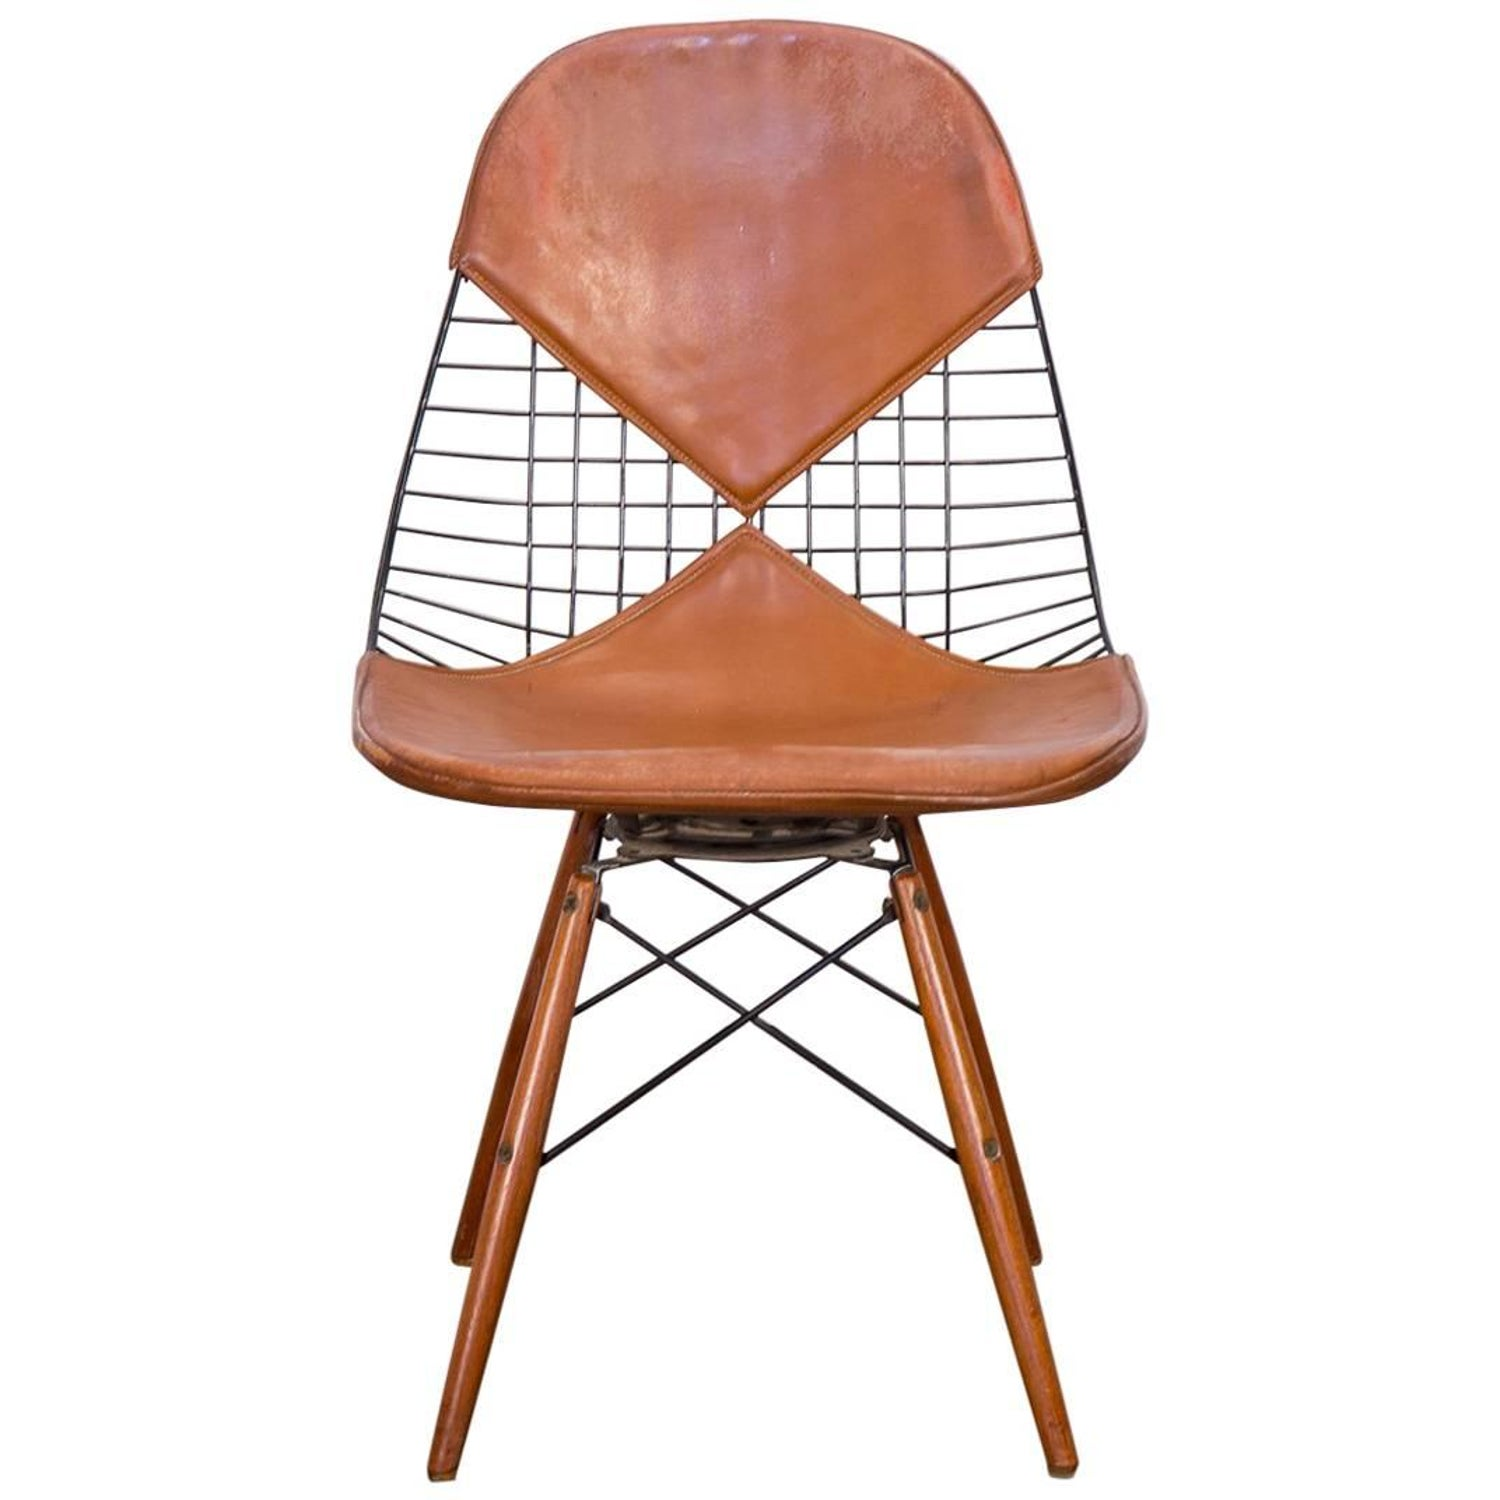 Eames Chair Original charles and eames chairs 124 for sale at 1stdibs